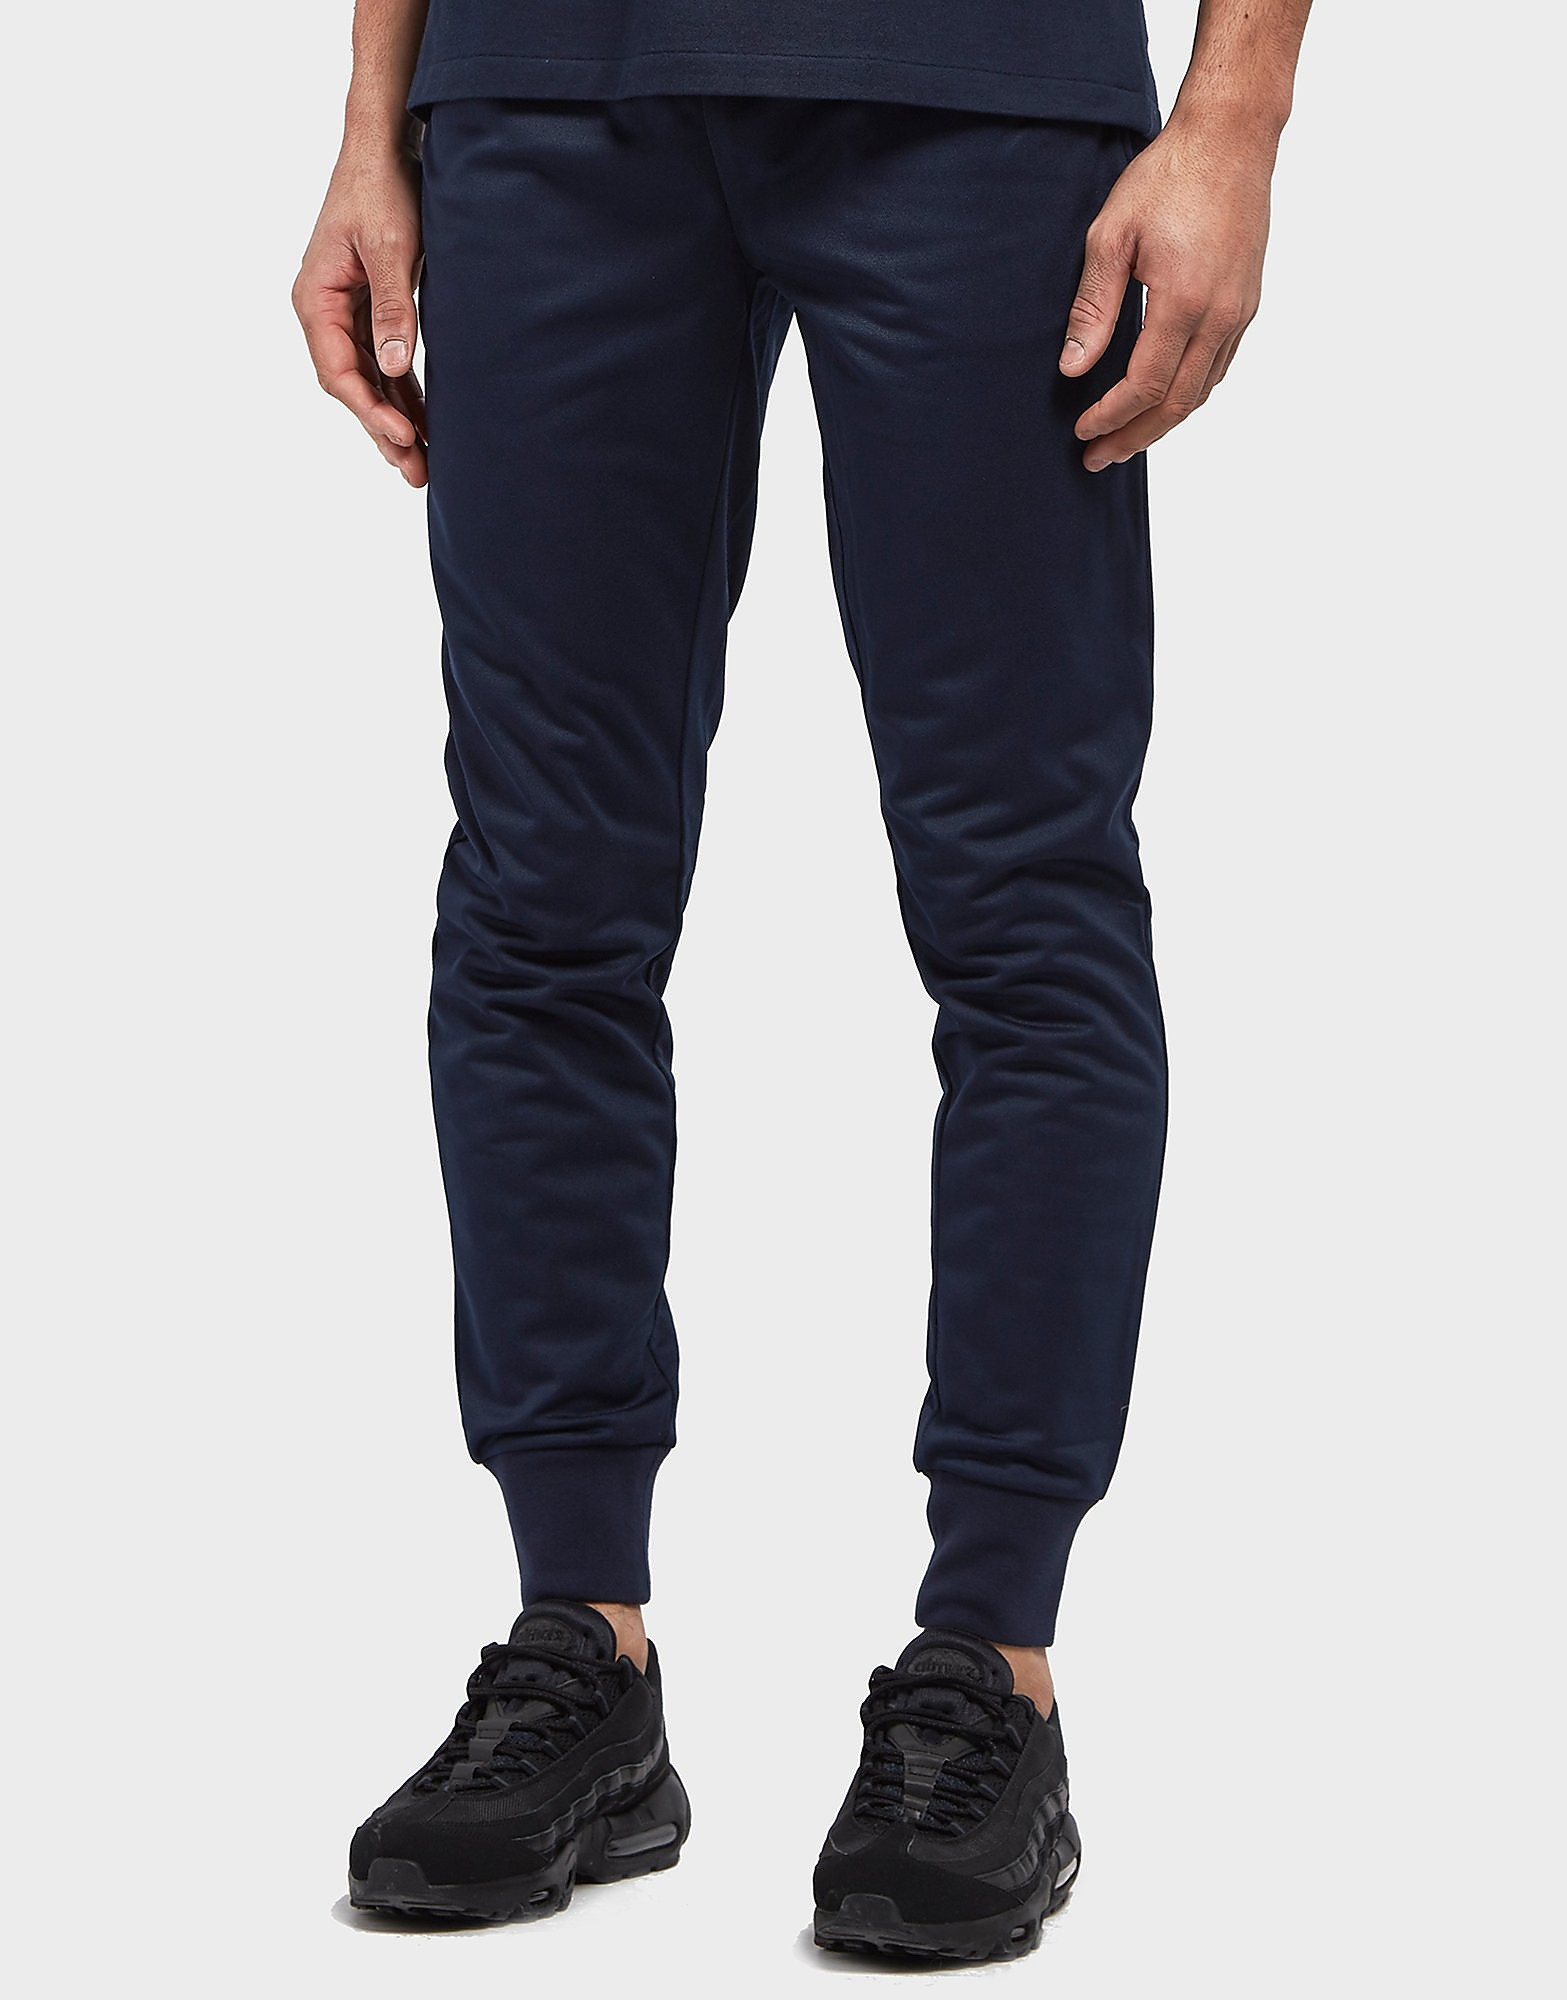 Lacoste Poly Pique Cuffed Track Pants